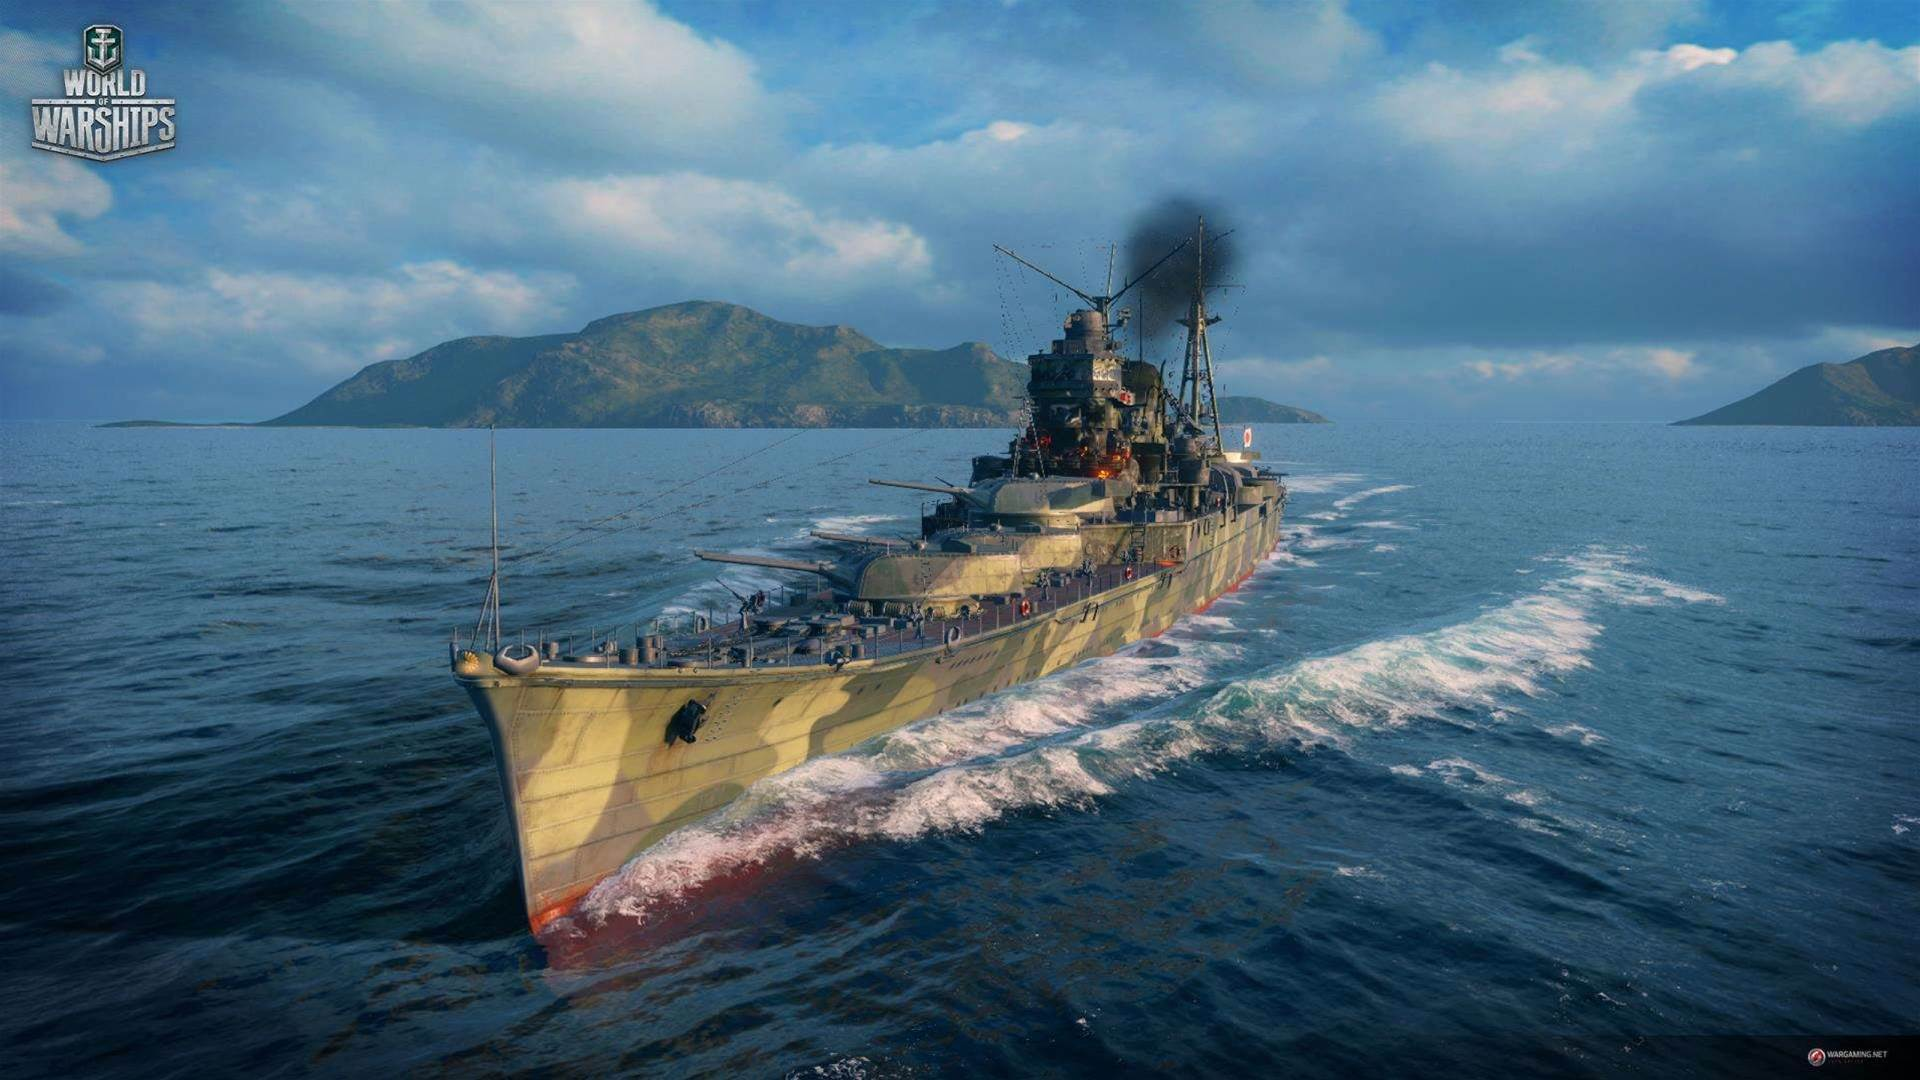 World of Warships screenshots